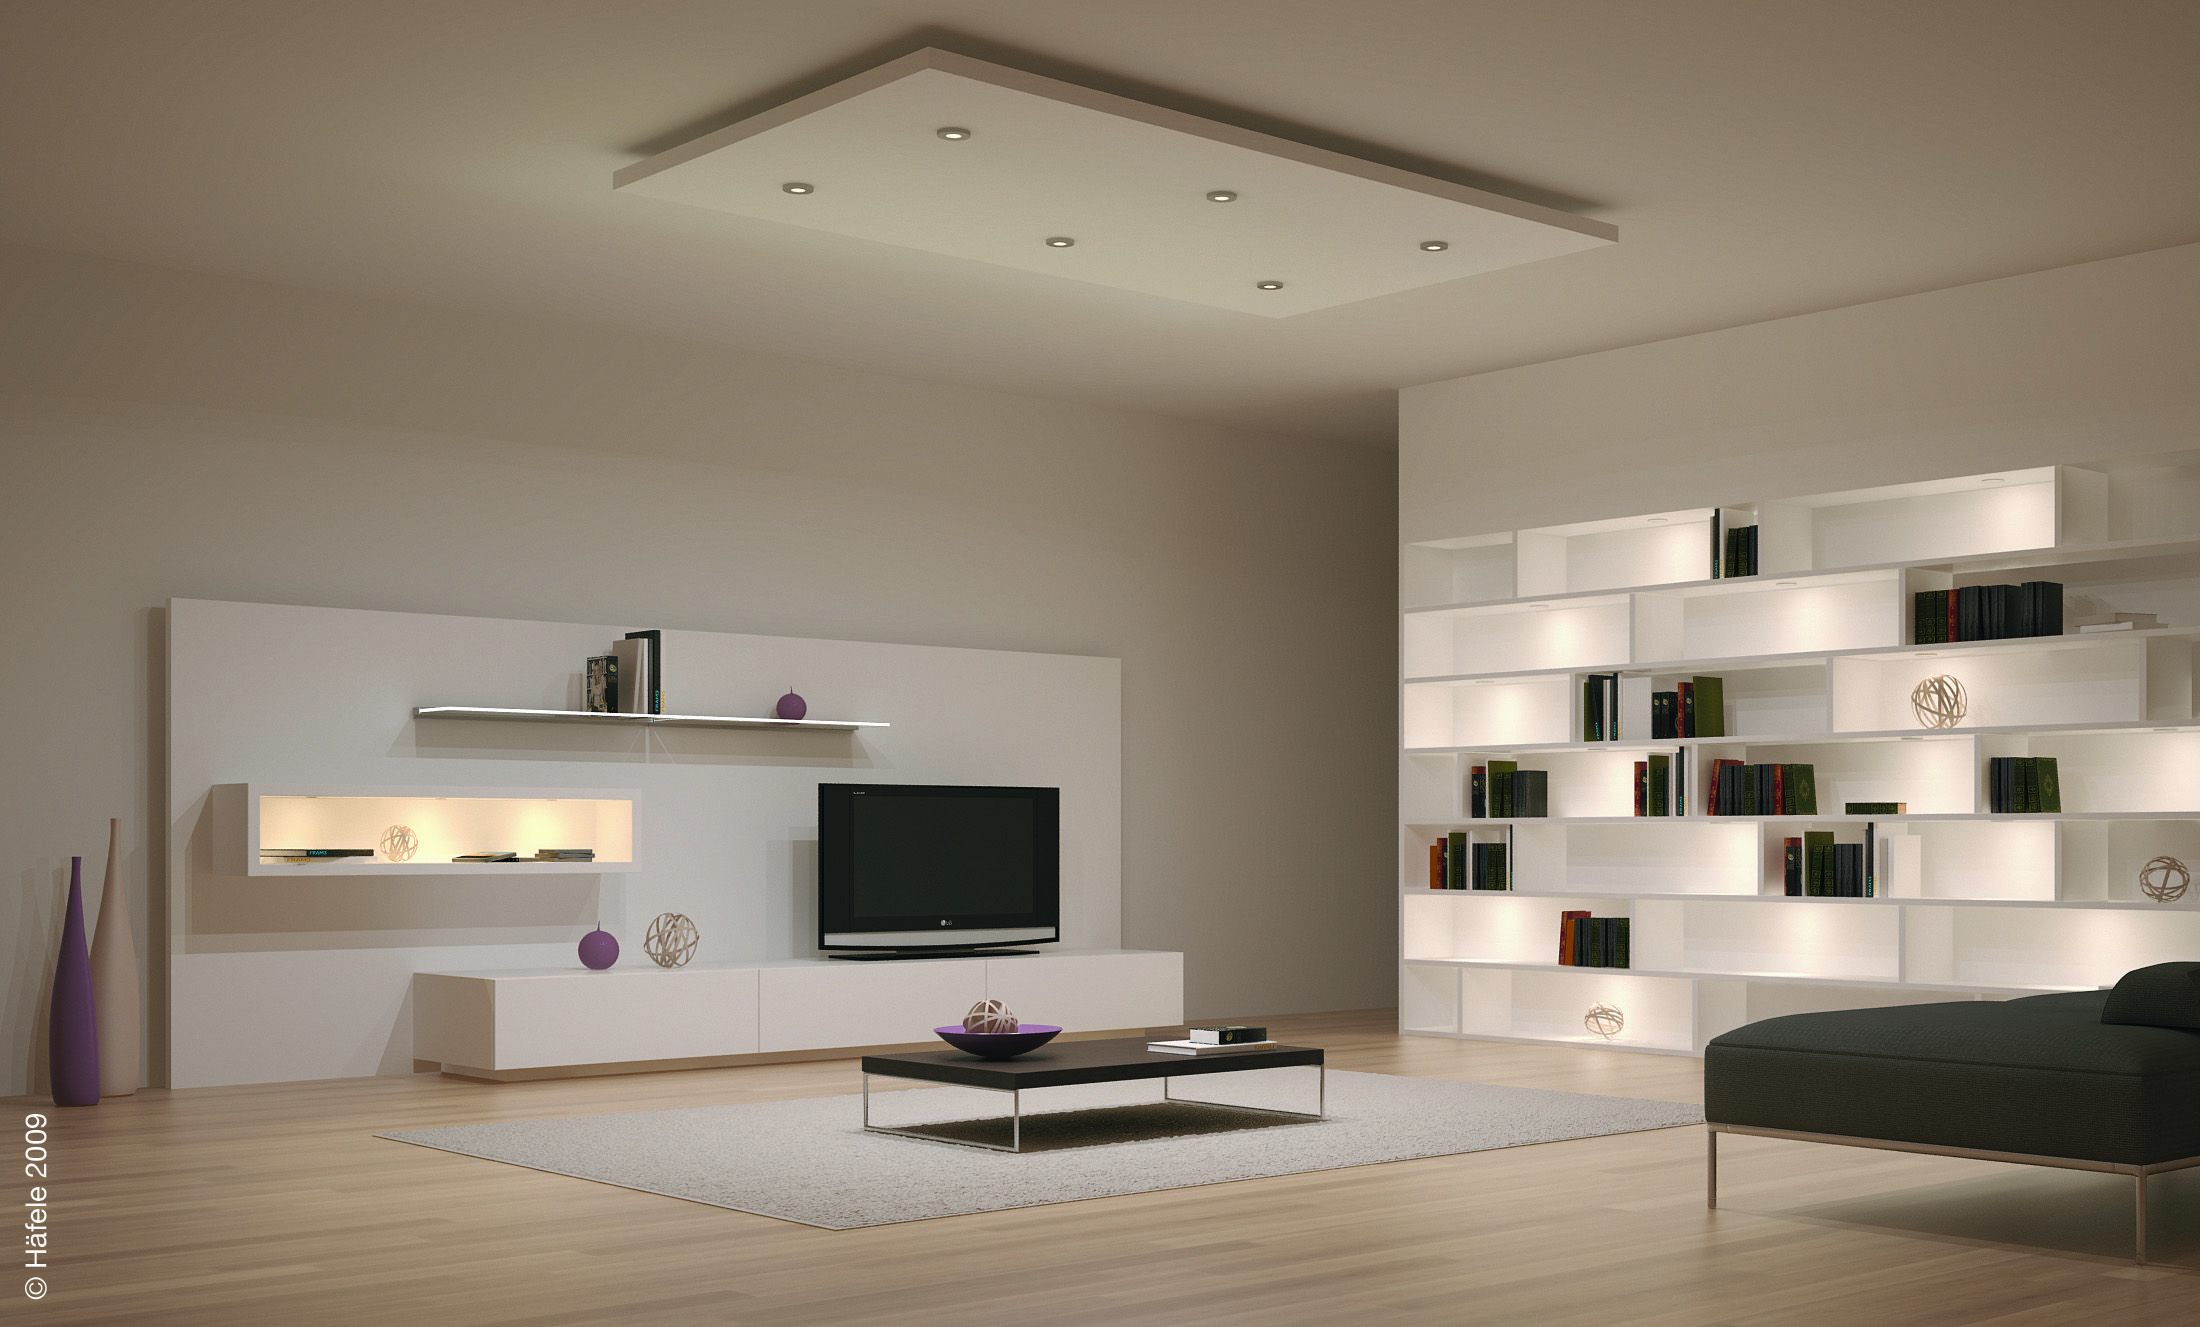 concealed lighting ideas. modern openspace living room design lighting system ideas with cool led ceiling recessed and wall shelves concealed lights creative eyecatching home v